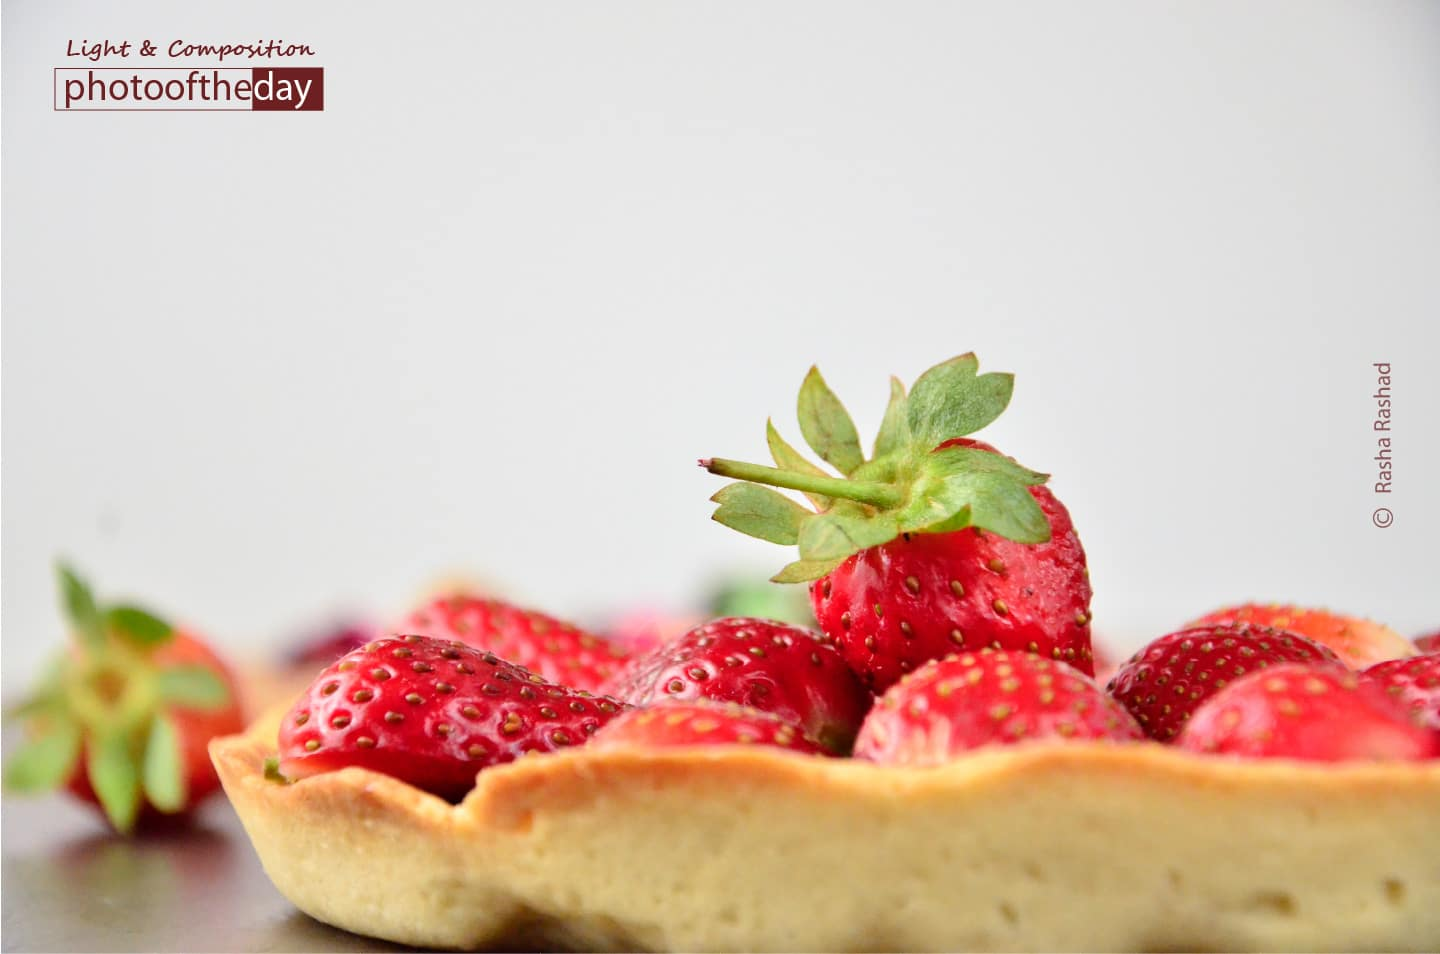 A Home Made Strawberry Tartlet, by Rasha Rashad